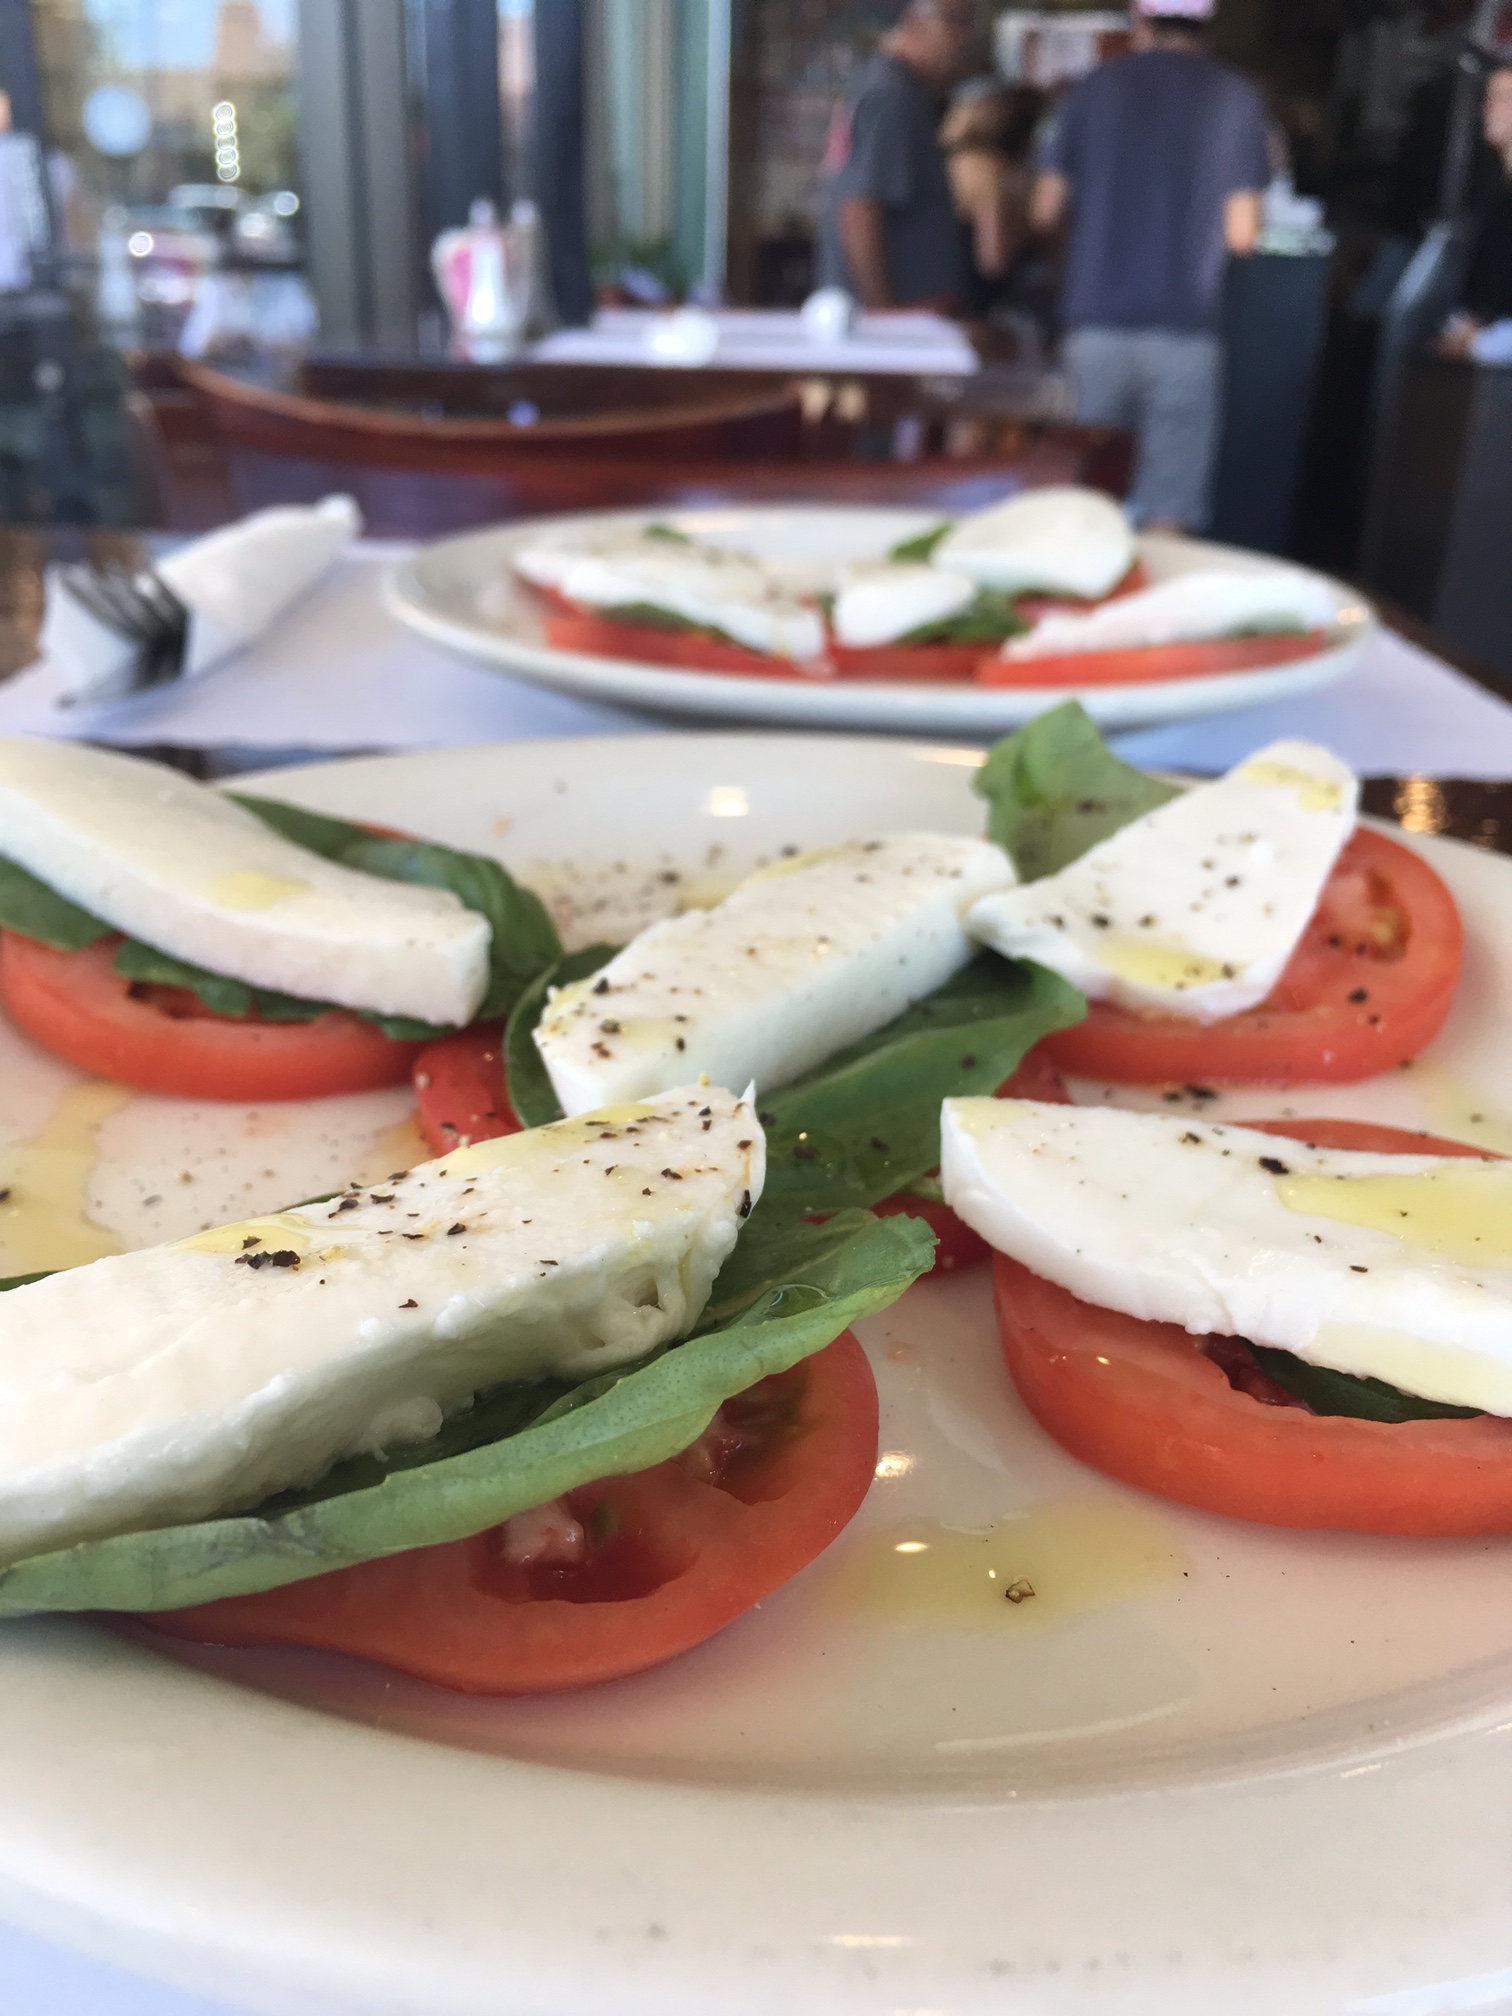 Mediterranean Caprese - Fresh Tomatoes, Basil & Mozzarella with Olive Oil & Balsamic